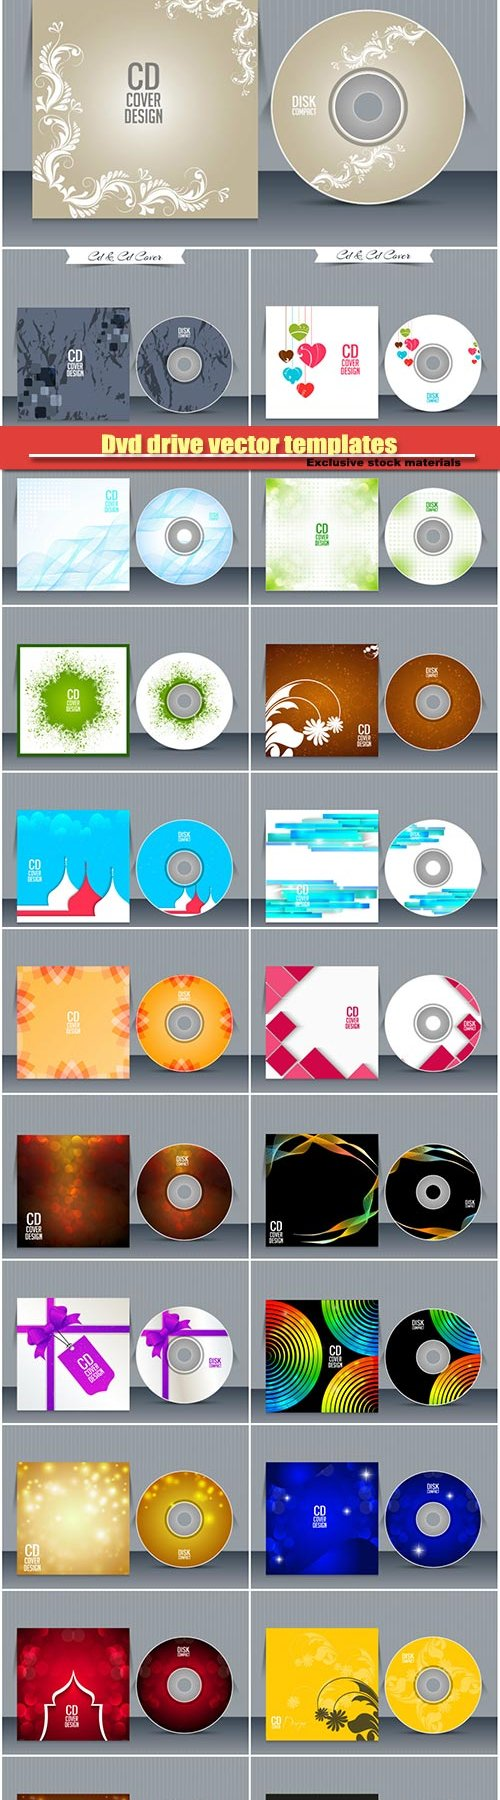 Dvd drive vector templates